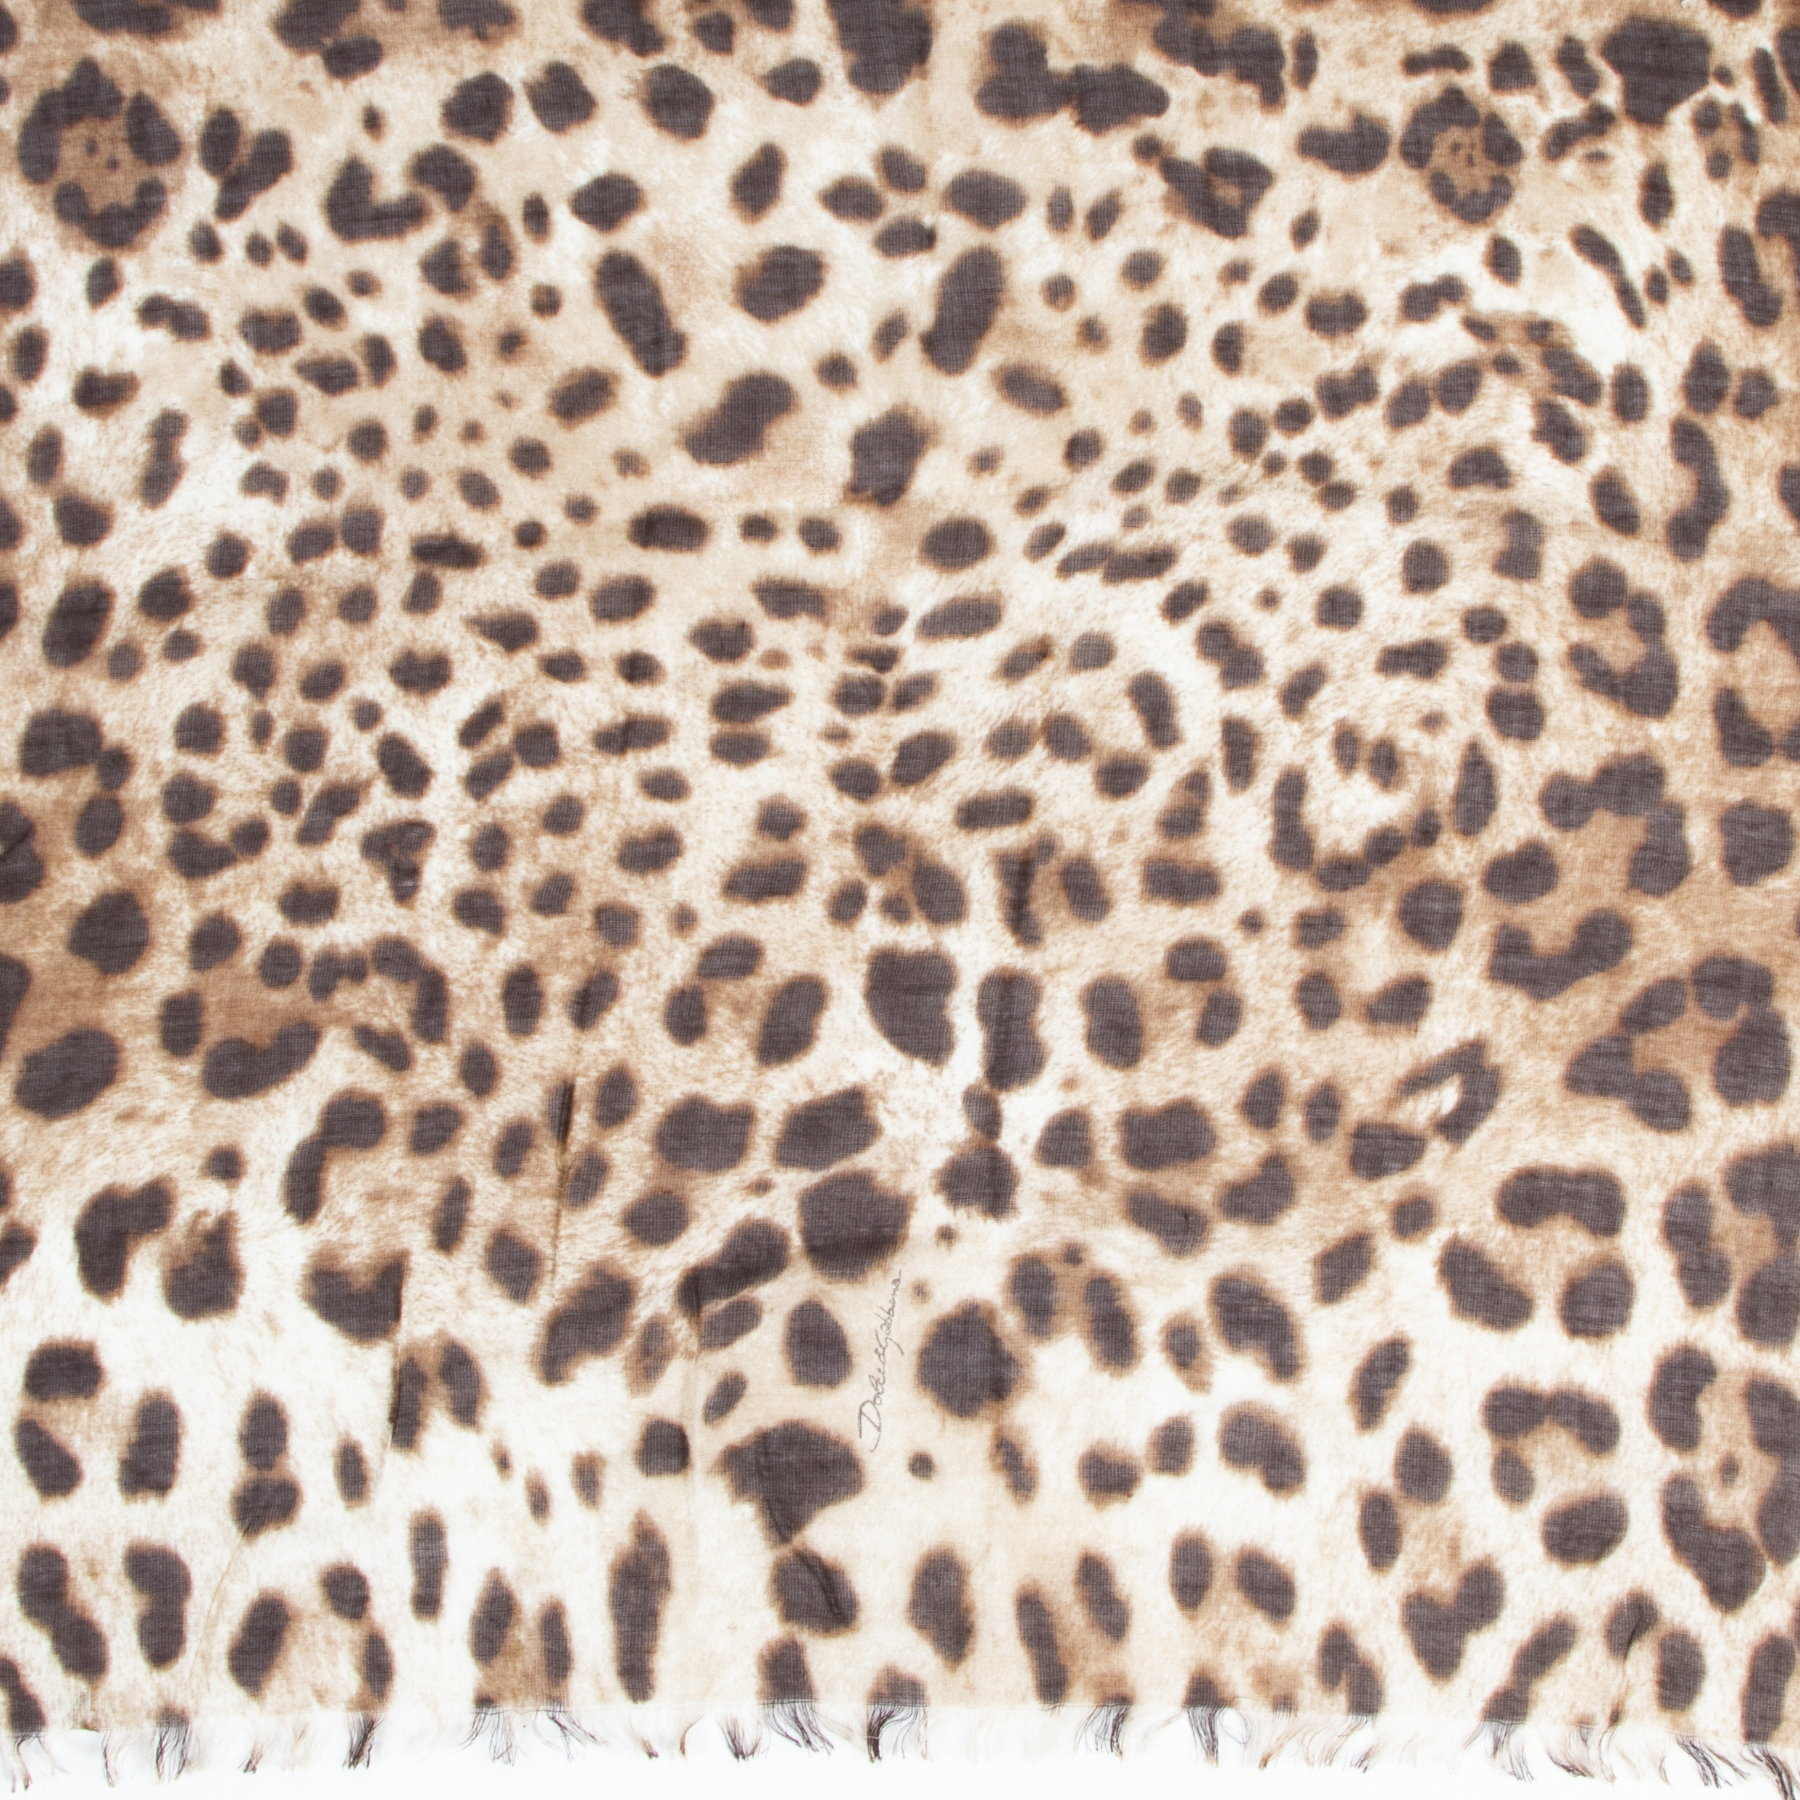 Authentic secondhand Dolce & Gabbana Leopard Print Scarf designer accessories fashion luxury vintage webshop safe secure online shopping high end brands